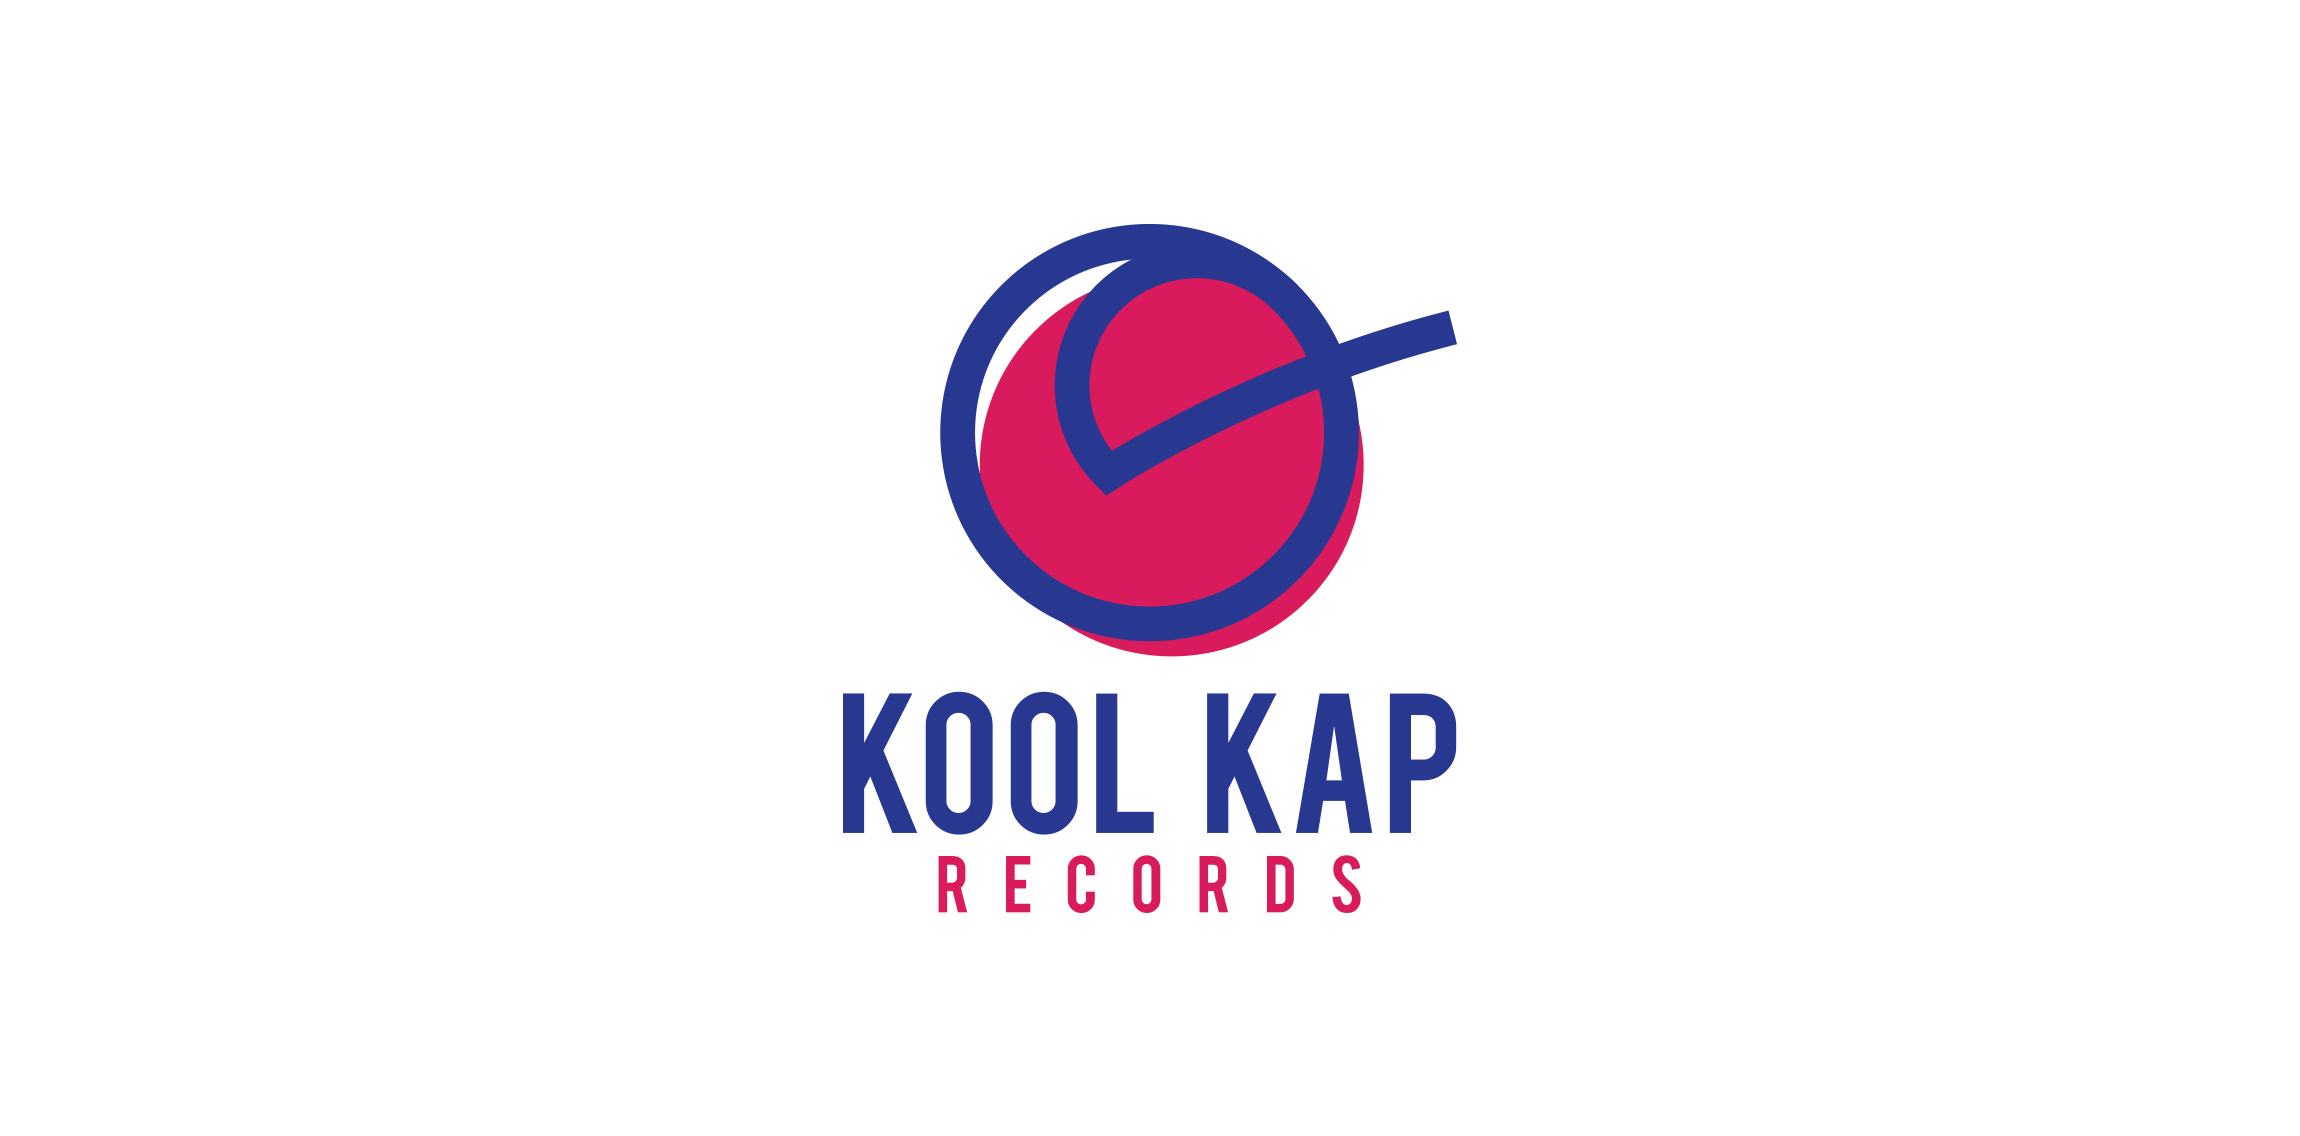 Kool Kap records